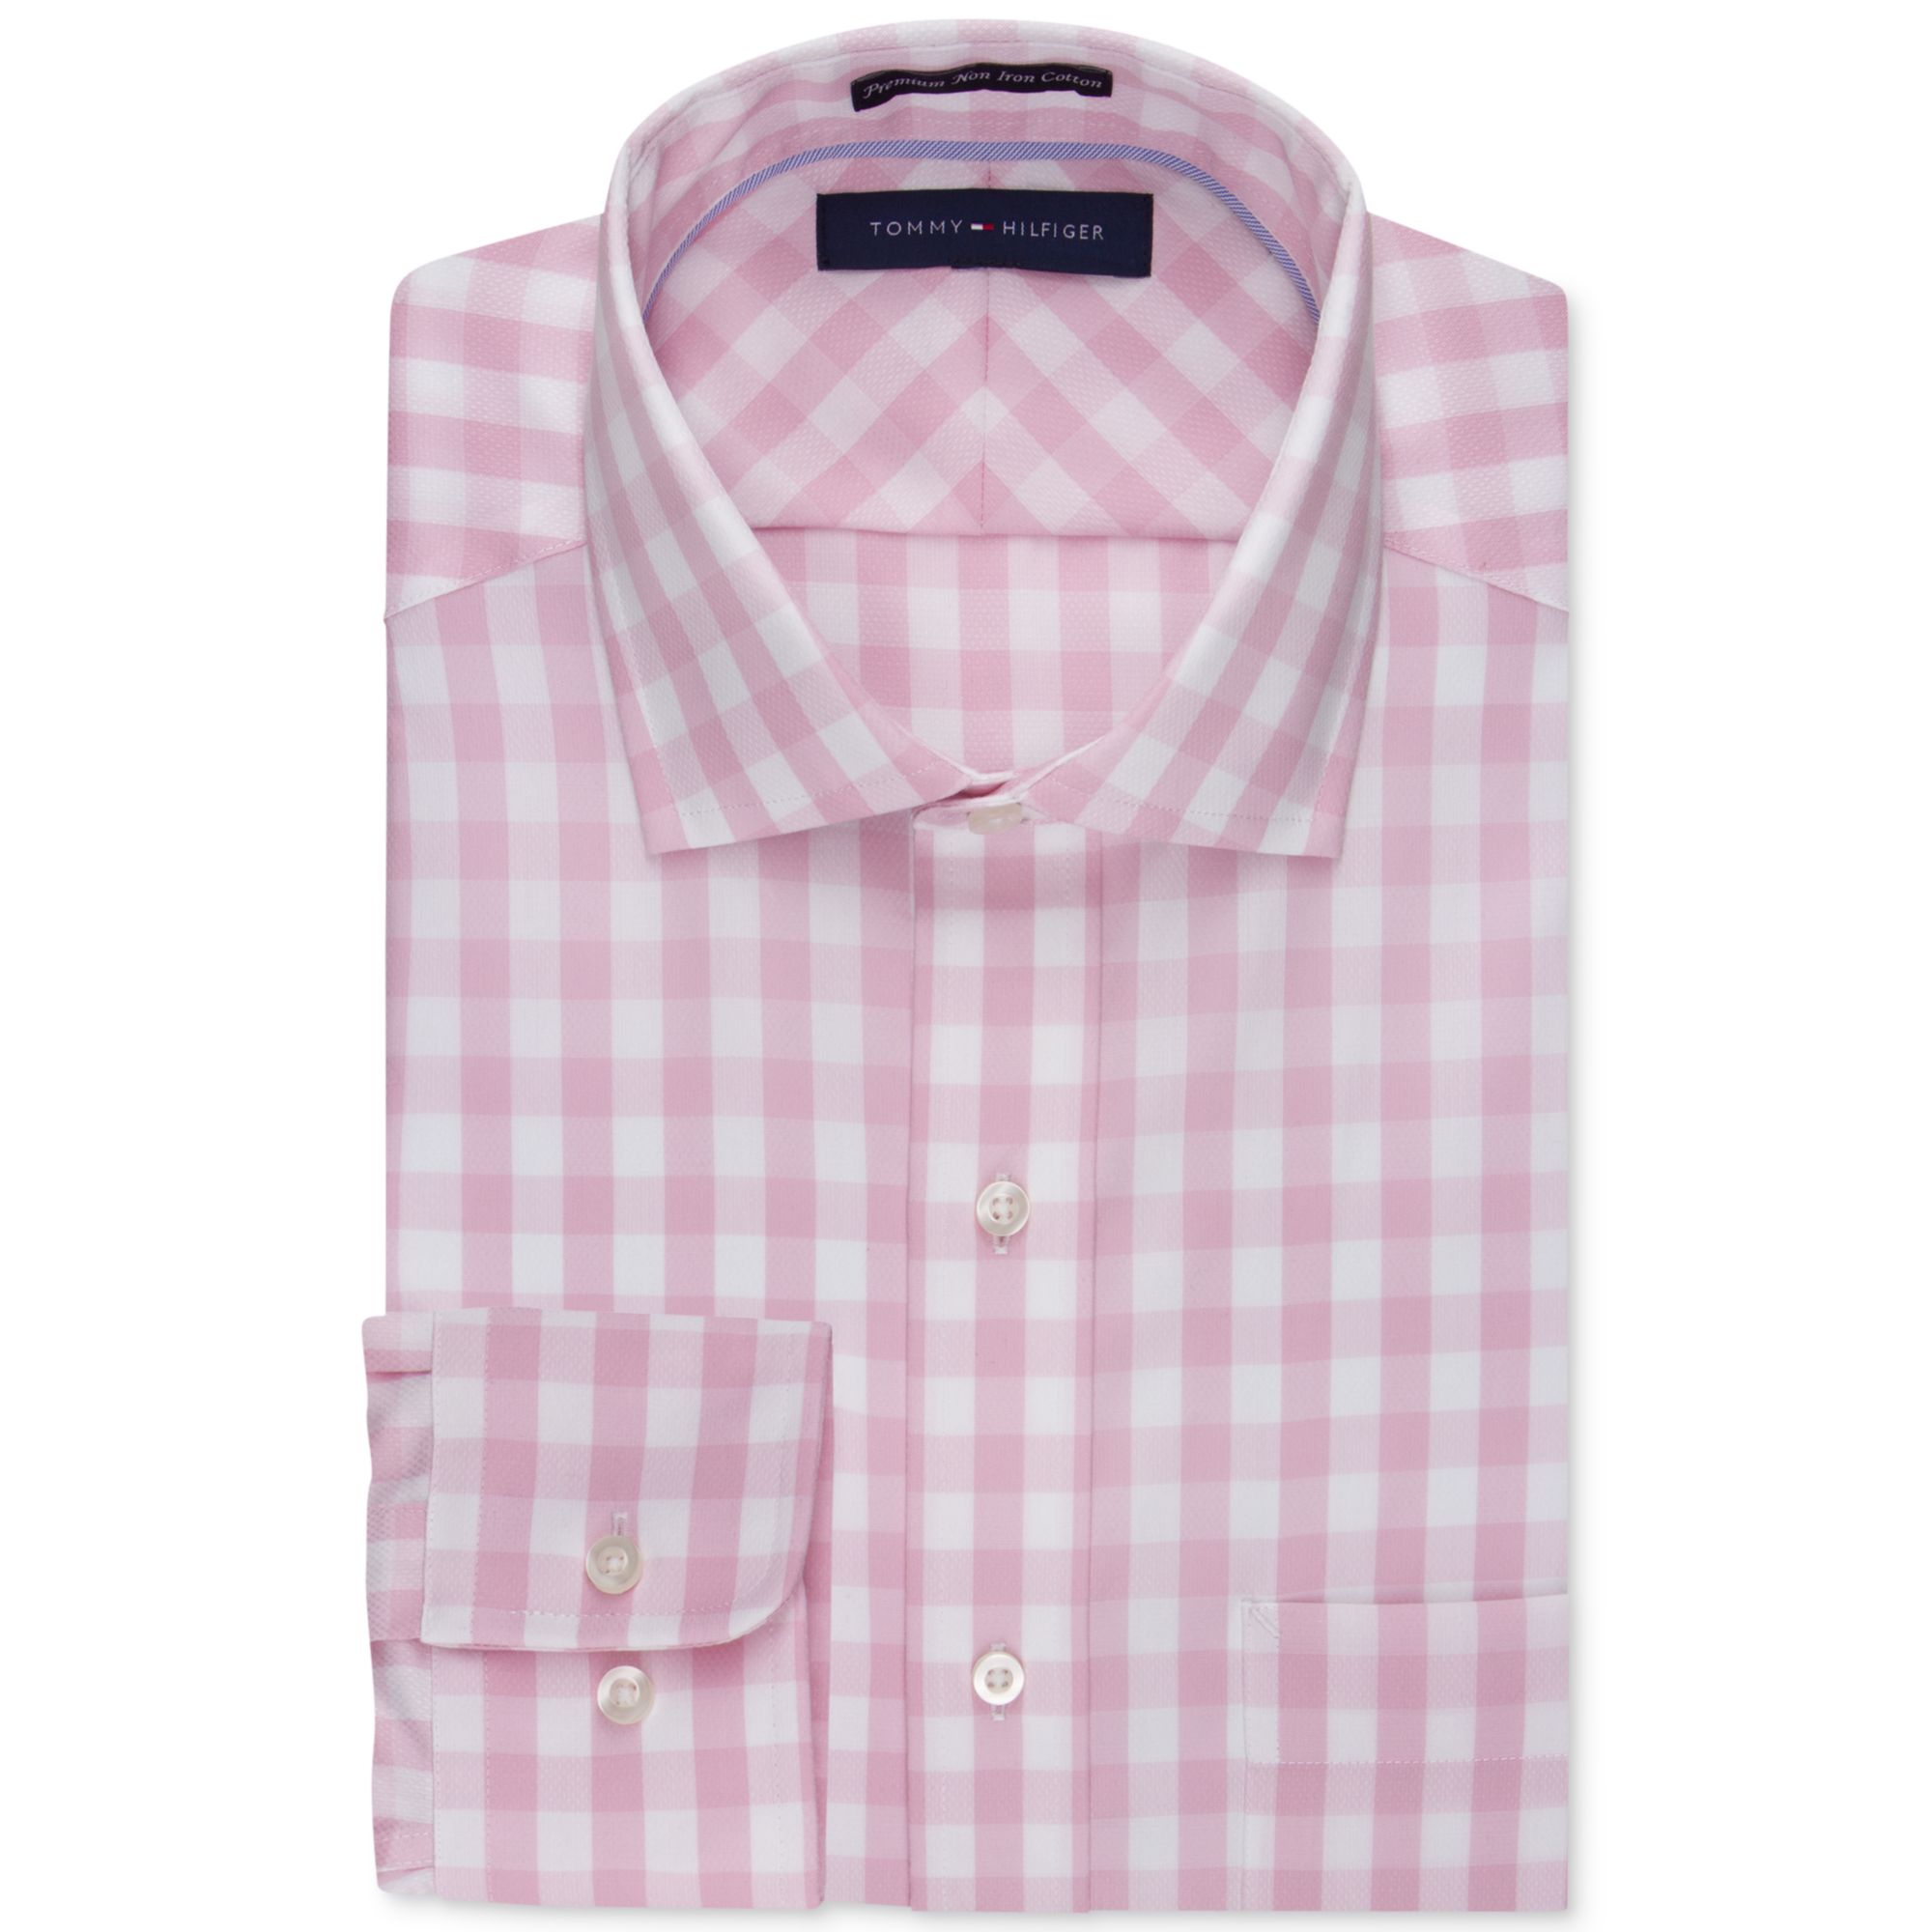 Tommy hilfiger no iron pink and white bold check dress for No iron dress shirts for men